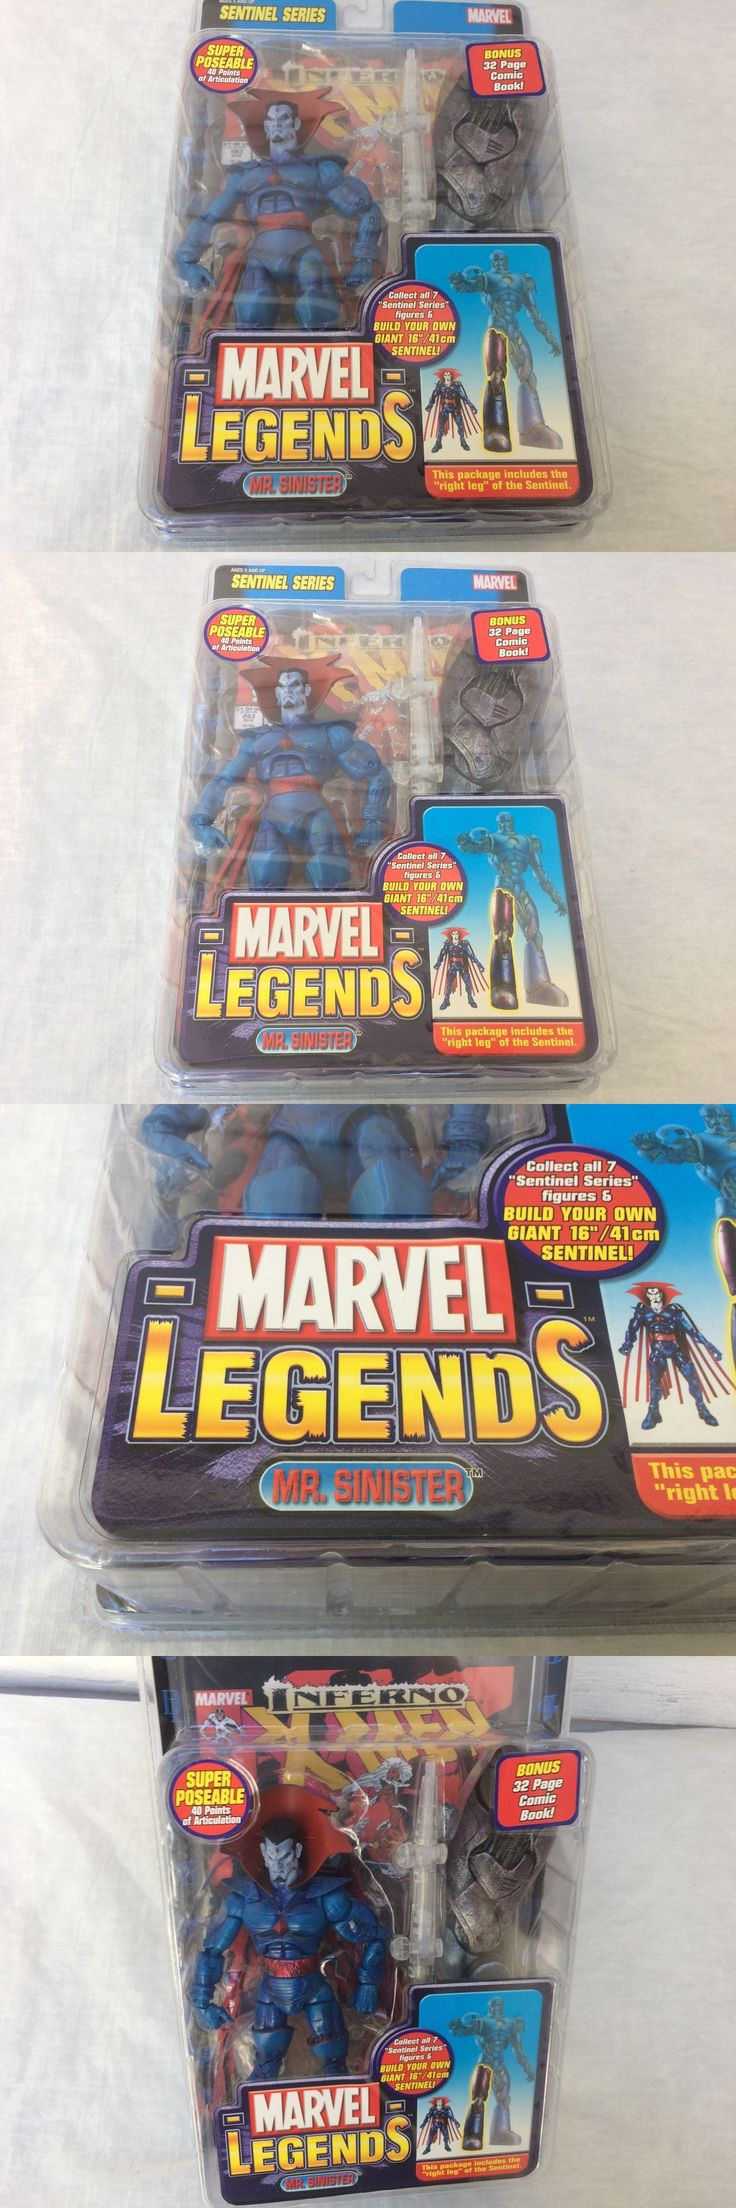 Comic Book Heroes 158671: Mr. Sinister Action Figure Marvel Legends Sentinel Series New Mip -> BUY IT NOW ONLY: $69.95 on eBay!